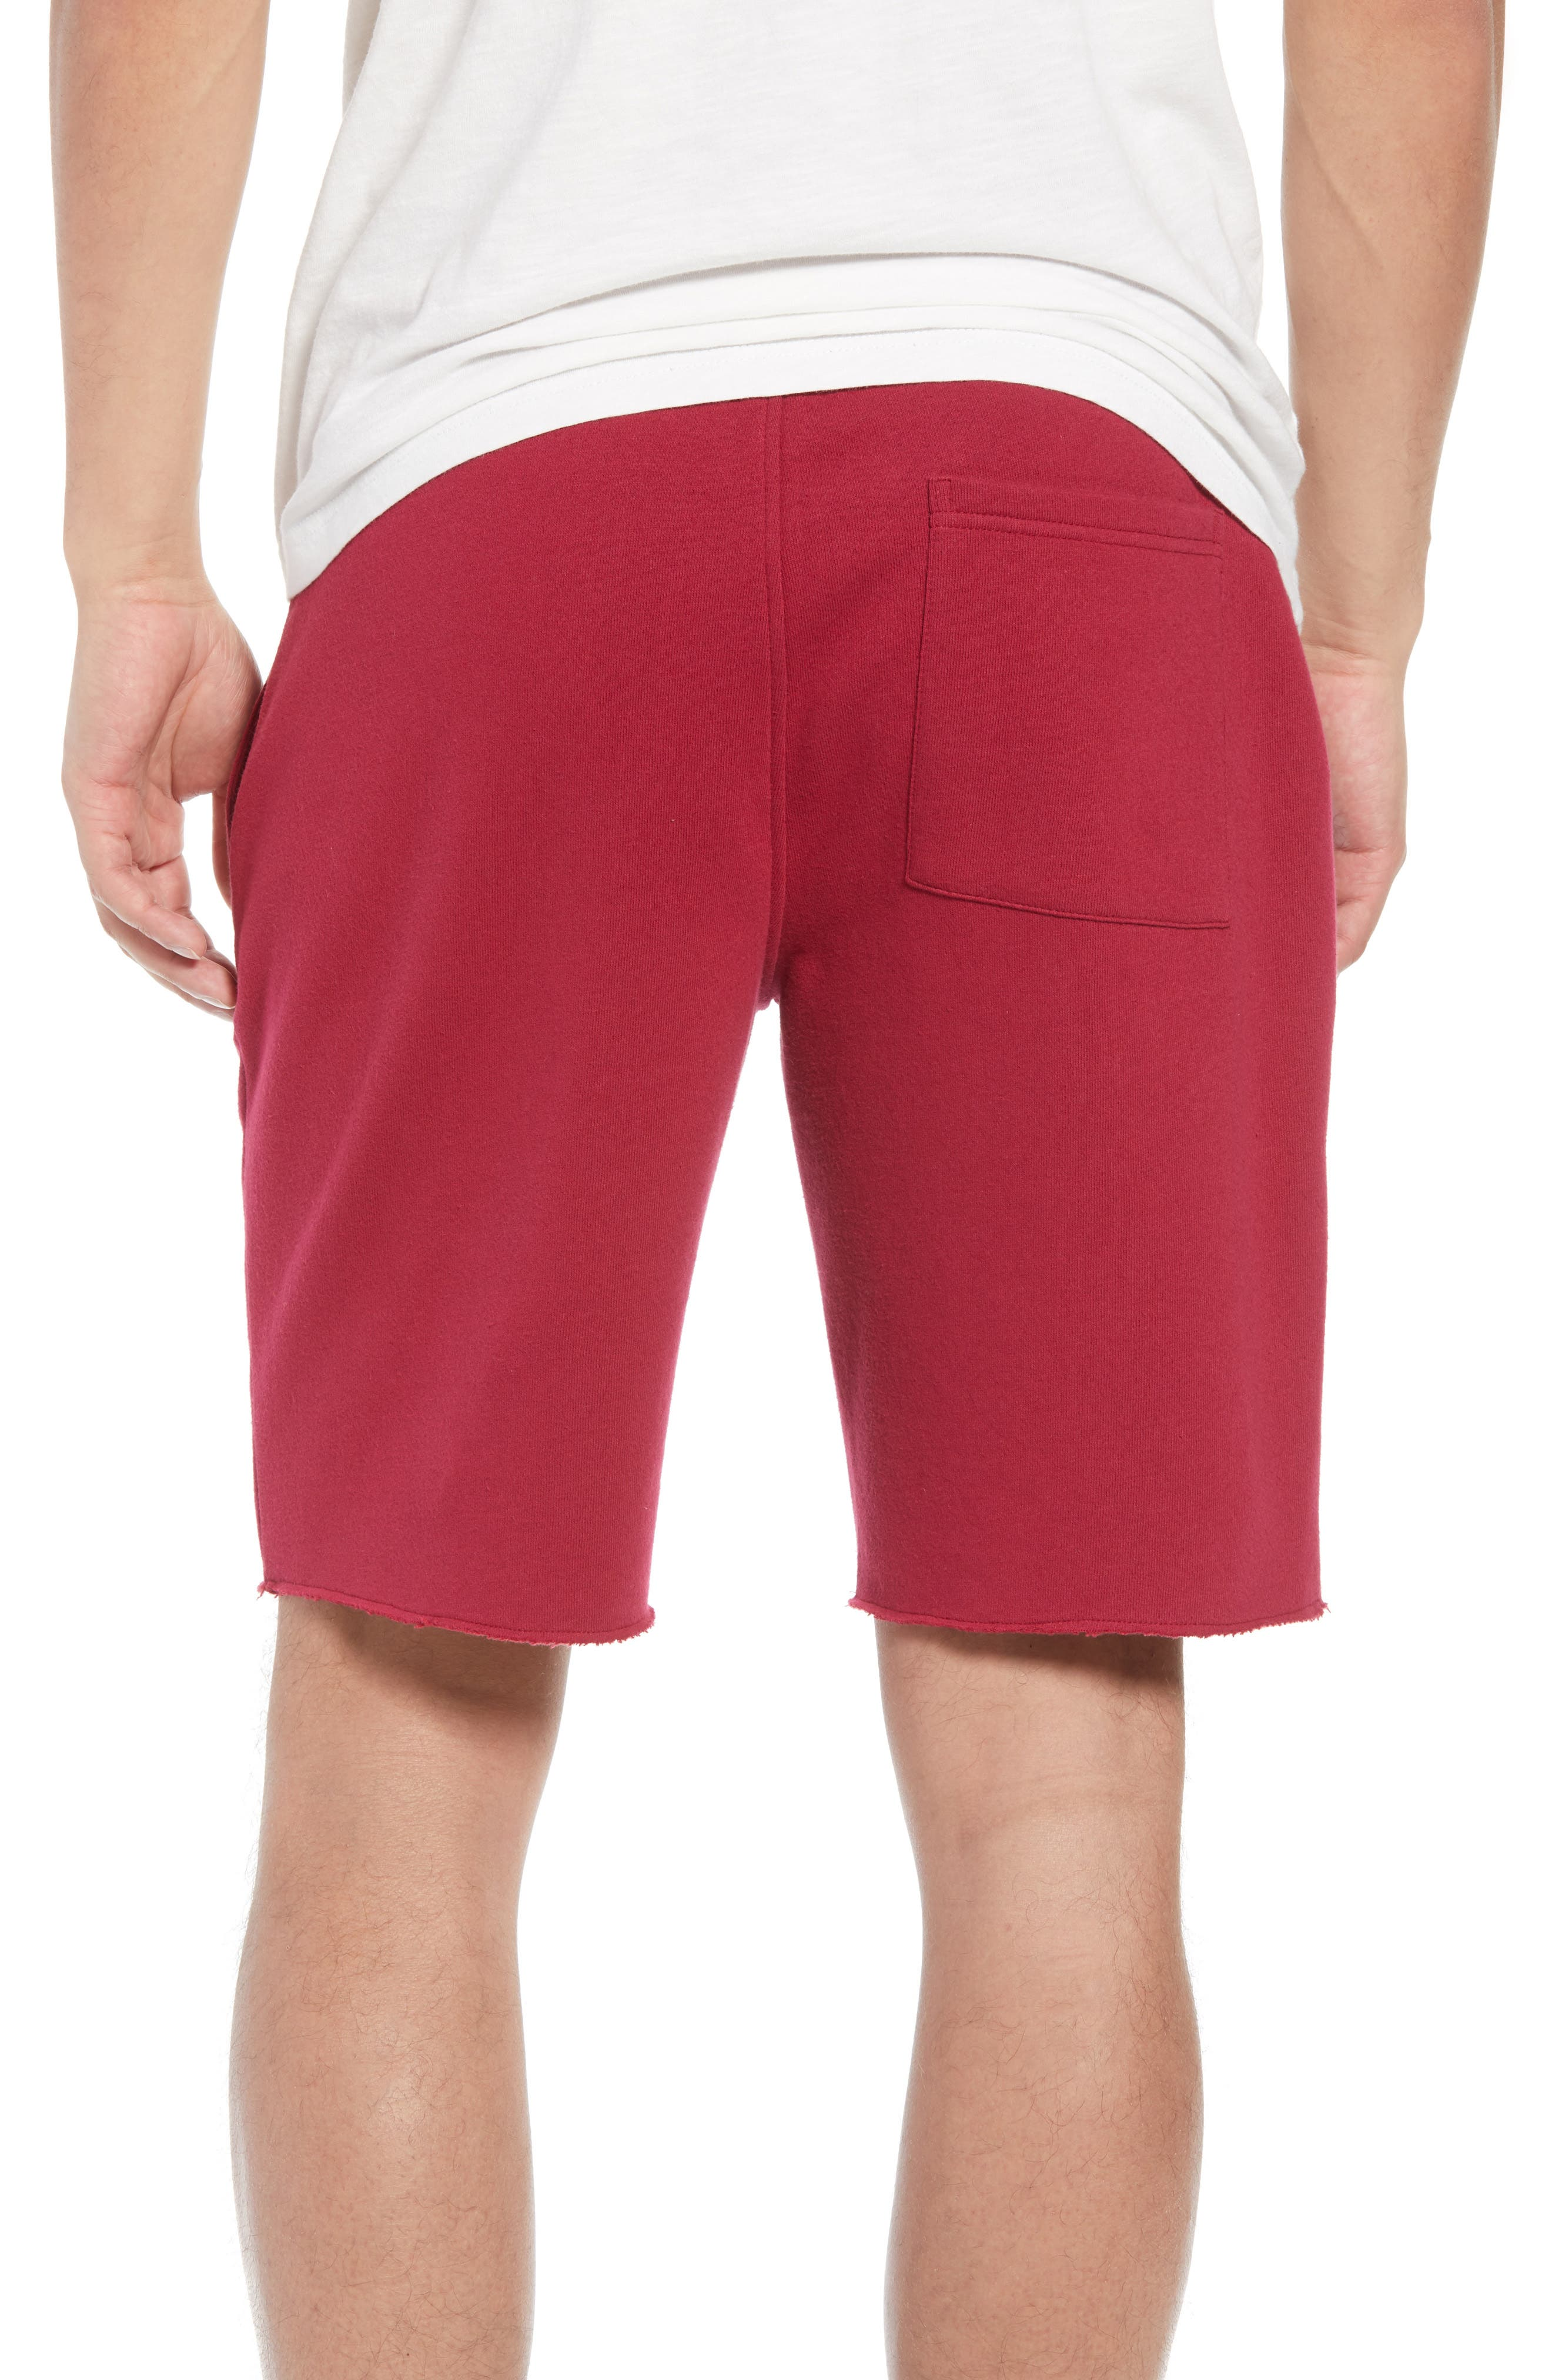 THE RAIL,                             Fleece Shorts,                             Alternate thumbnail 2, color,                             601